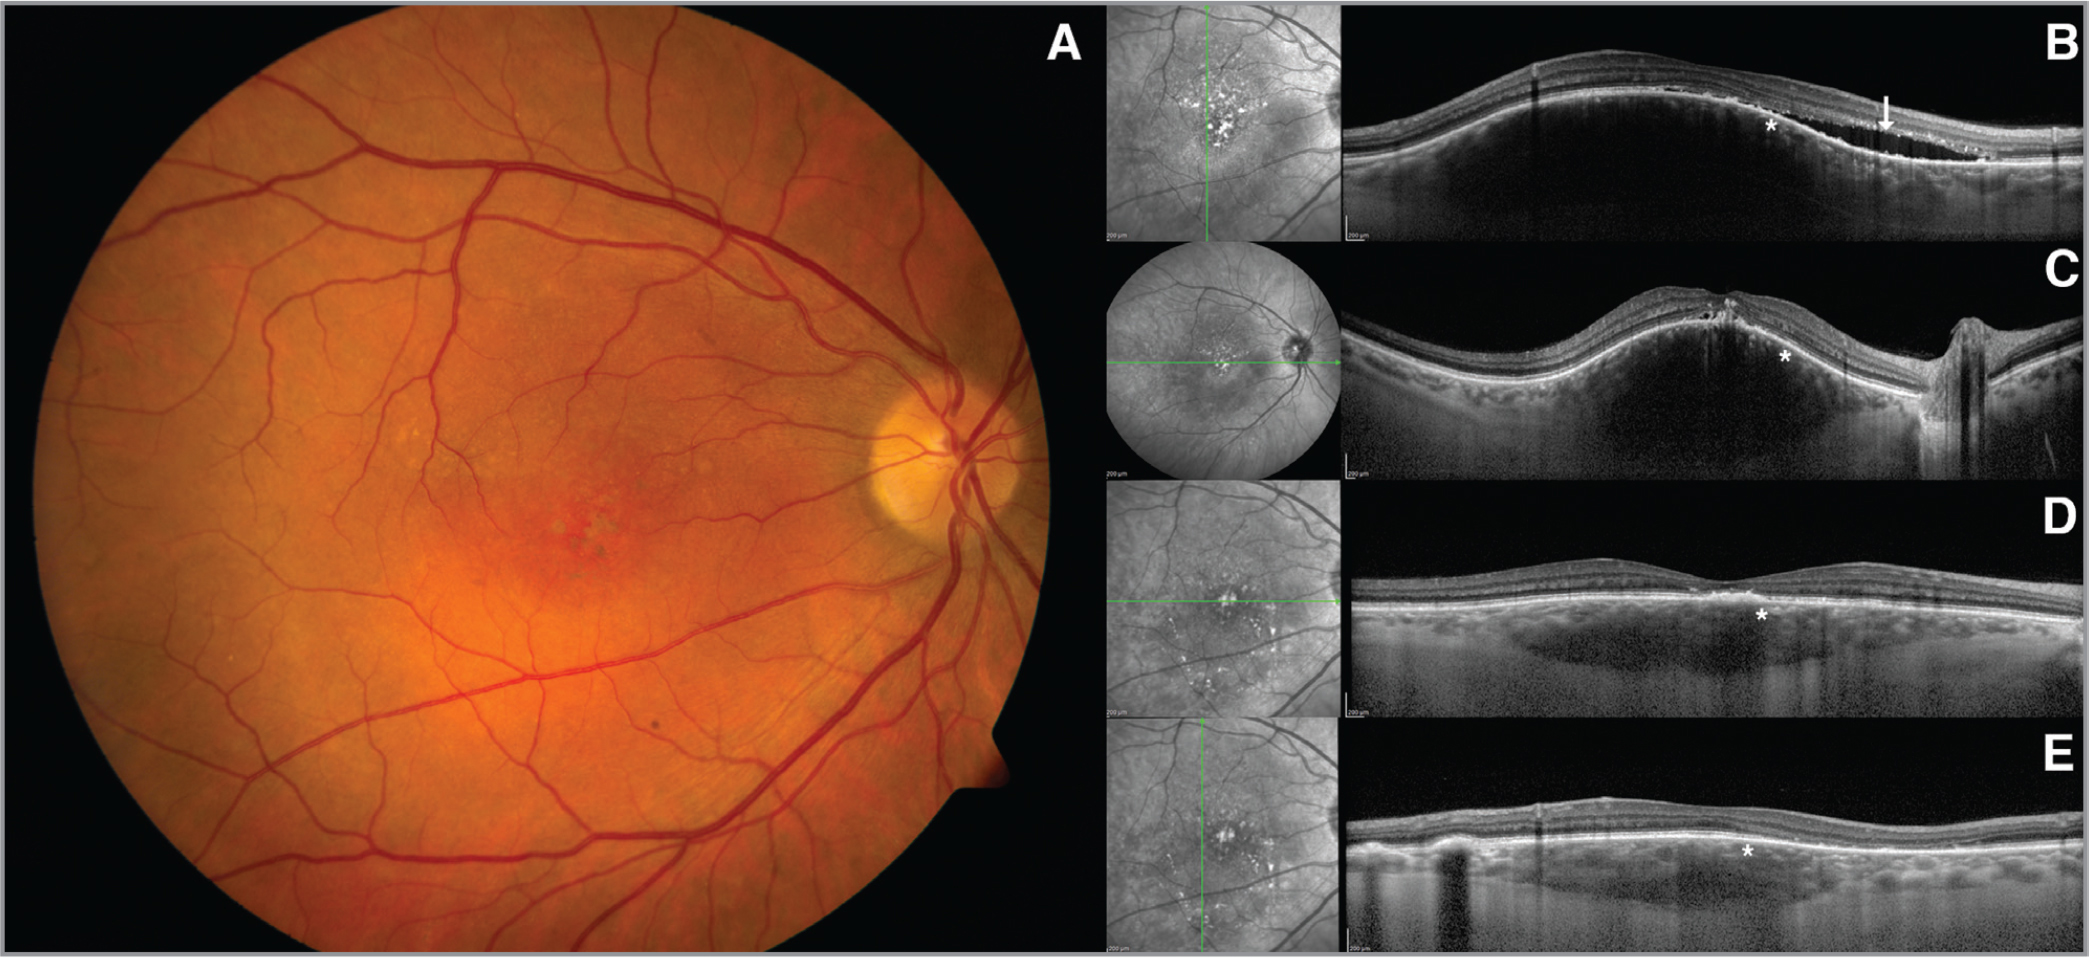 (A) Choroidal hemangioma on the macula causing decreased vision. (B, C) On enhanced depth imaging optical coherence tomography, normal-looking honeycomb-like choriocapillaris (asterisk), overlying subretinal fluid, and exudates (arrow) are visible. (D, E) After photodynamic therapy, the choriocapillaris showed normal-looking honeycomb-like pattern with sclerosis (asterisk). Subretinal fluid improved.